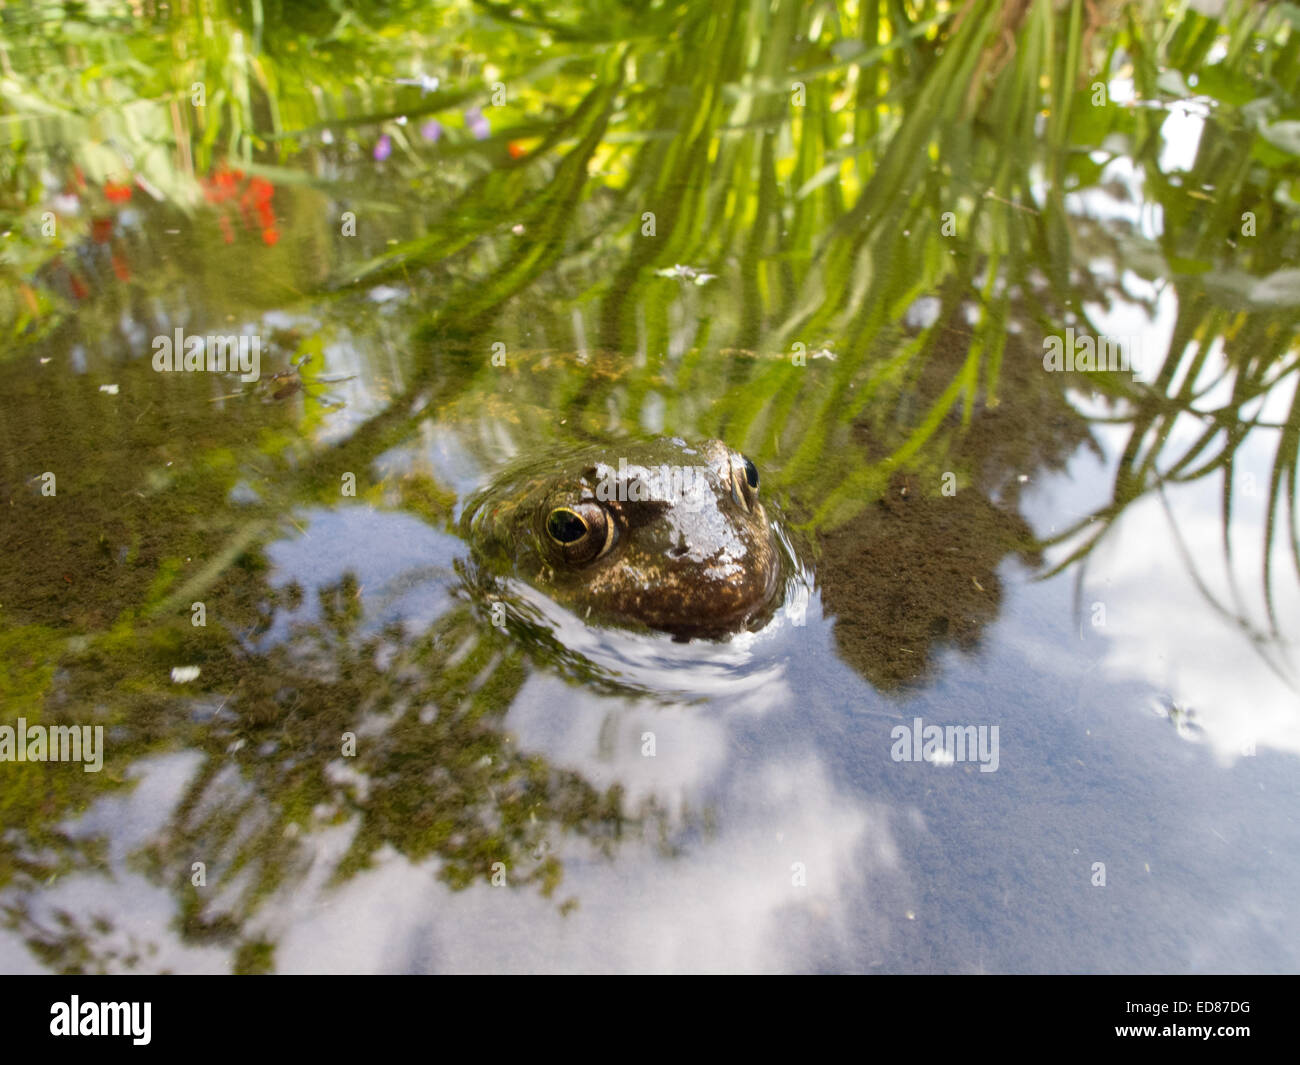 A frog almost completely submereged in a garden pond. - Stock Image